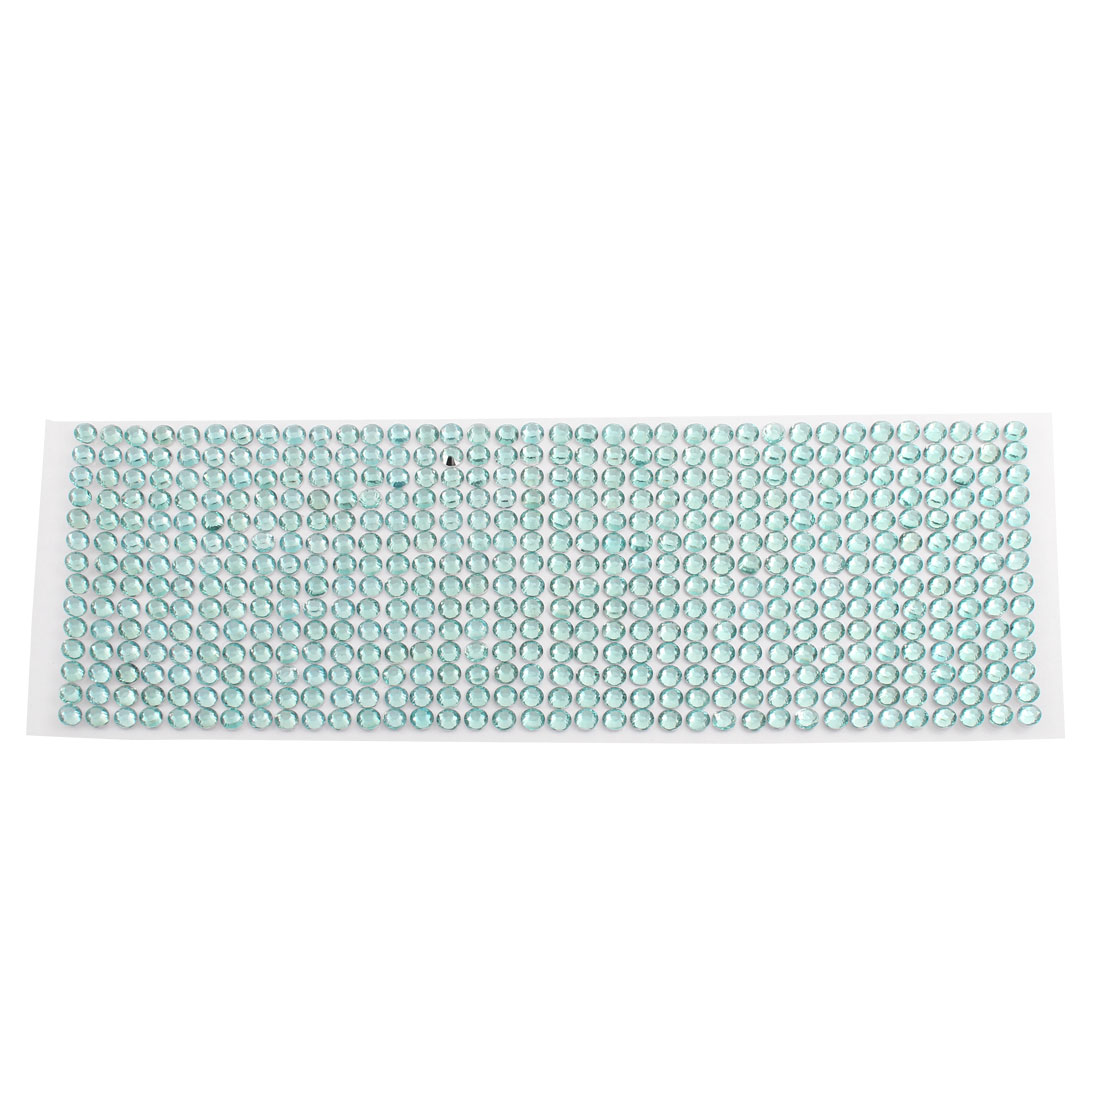 Light Blue Self Adhesive Bling Crystal Rhinestone Decorating DIY Stickers 255mm x 90mm